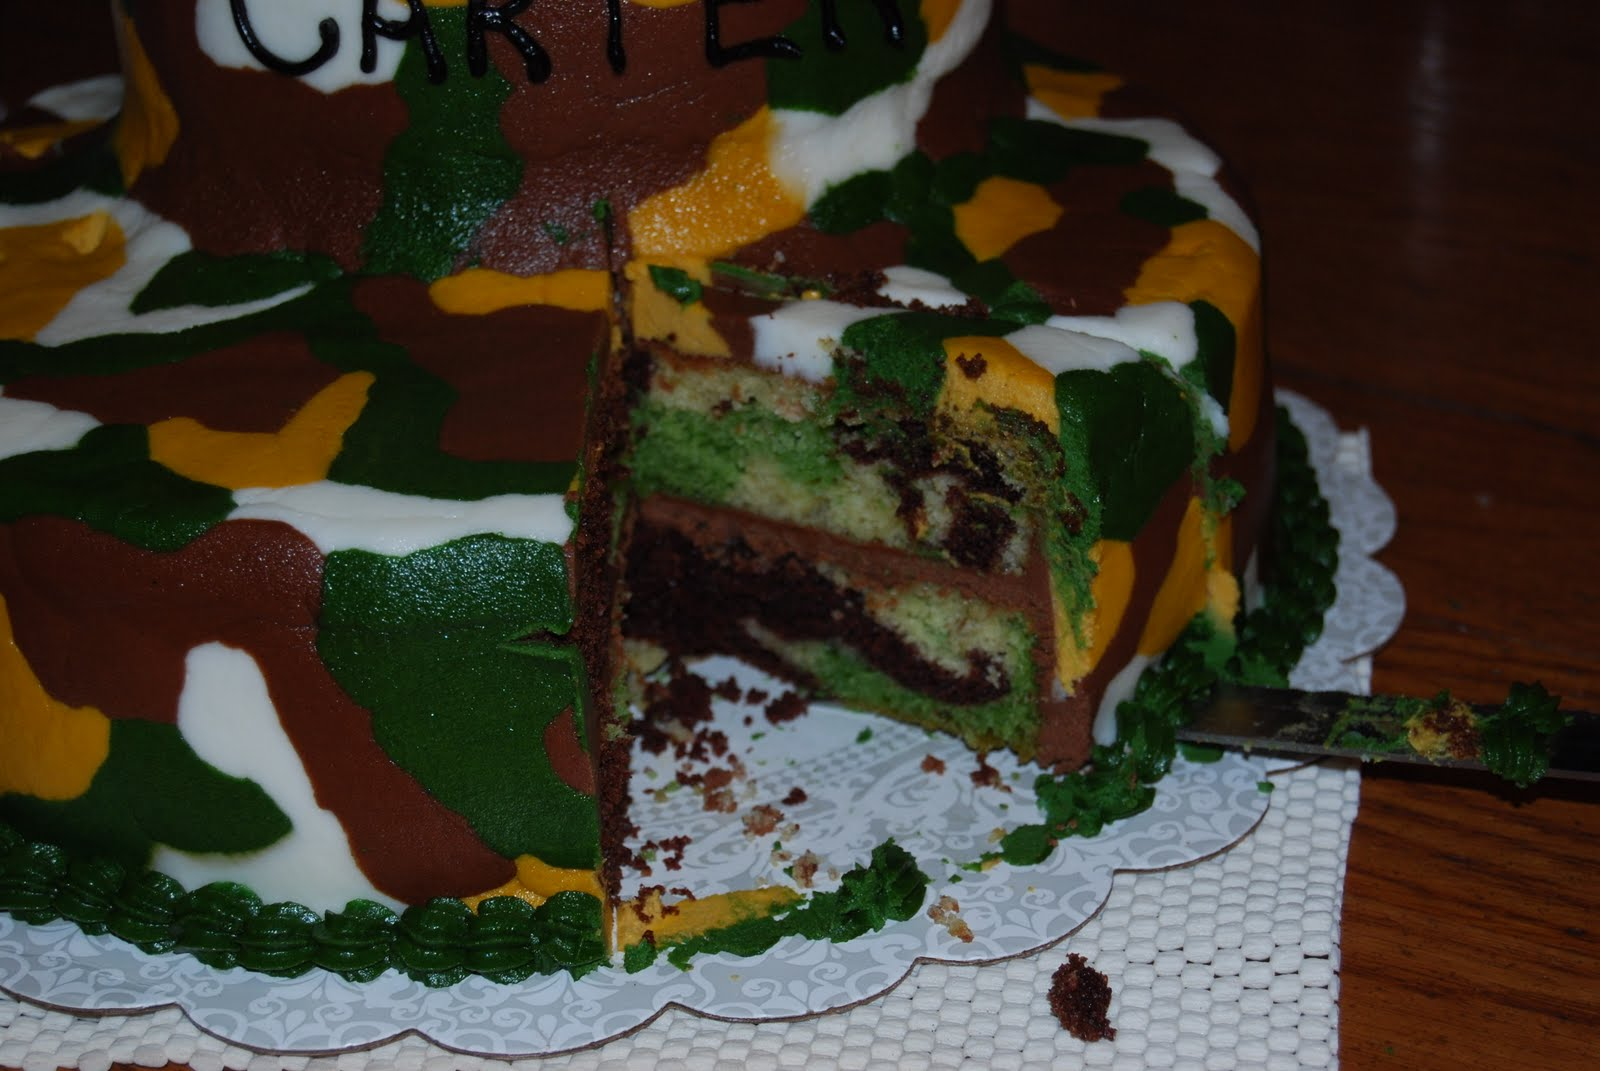 Saving Dougs Sanity How I made a camouflage cake inside and out